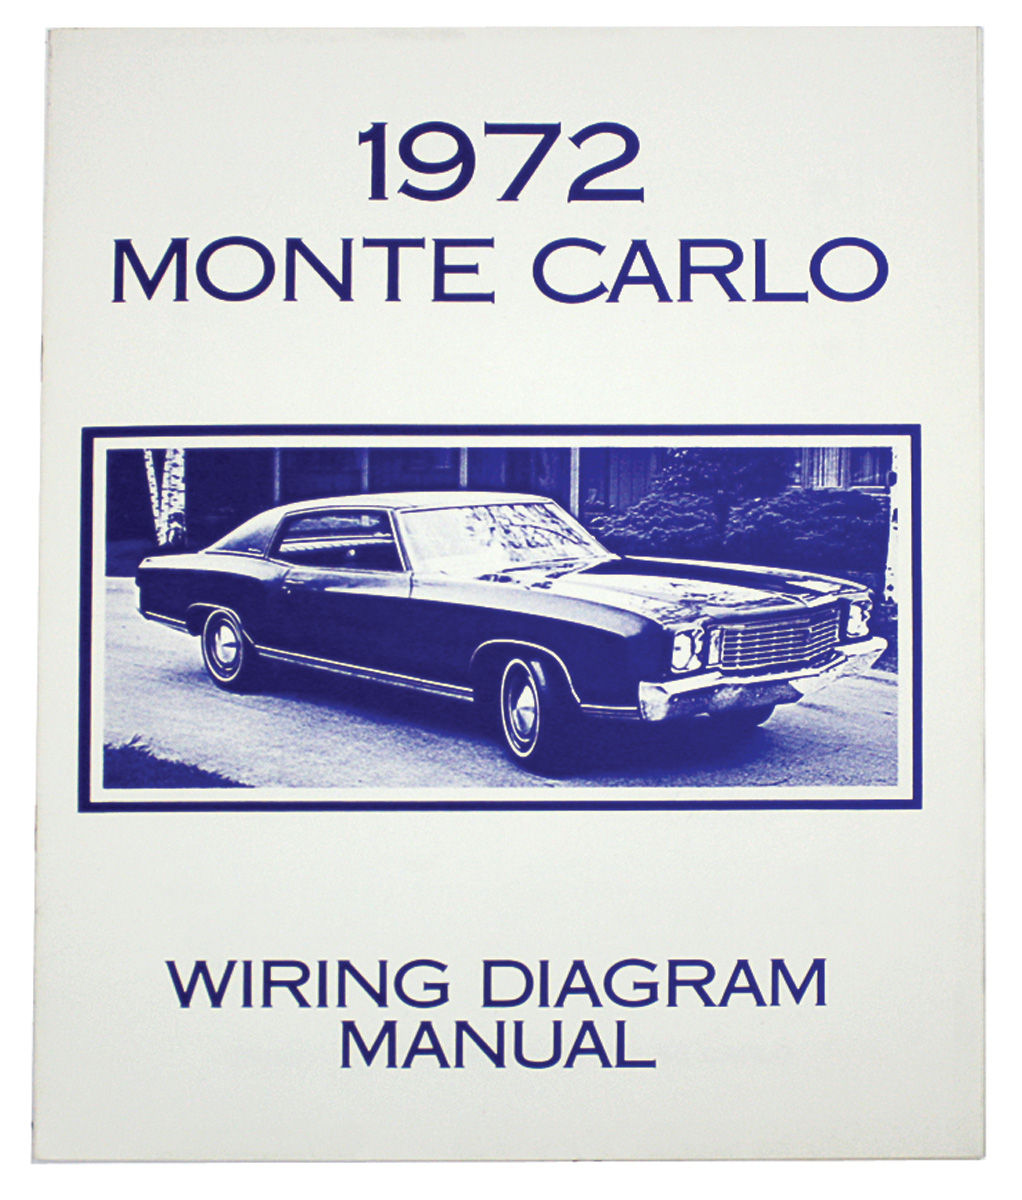 hight resolution of monte carlo wiring diagram manuals opgi com rh opgi com 1972 chevy blazer wiring diagram 1996 chevy monte carlo